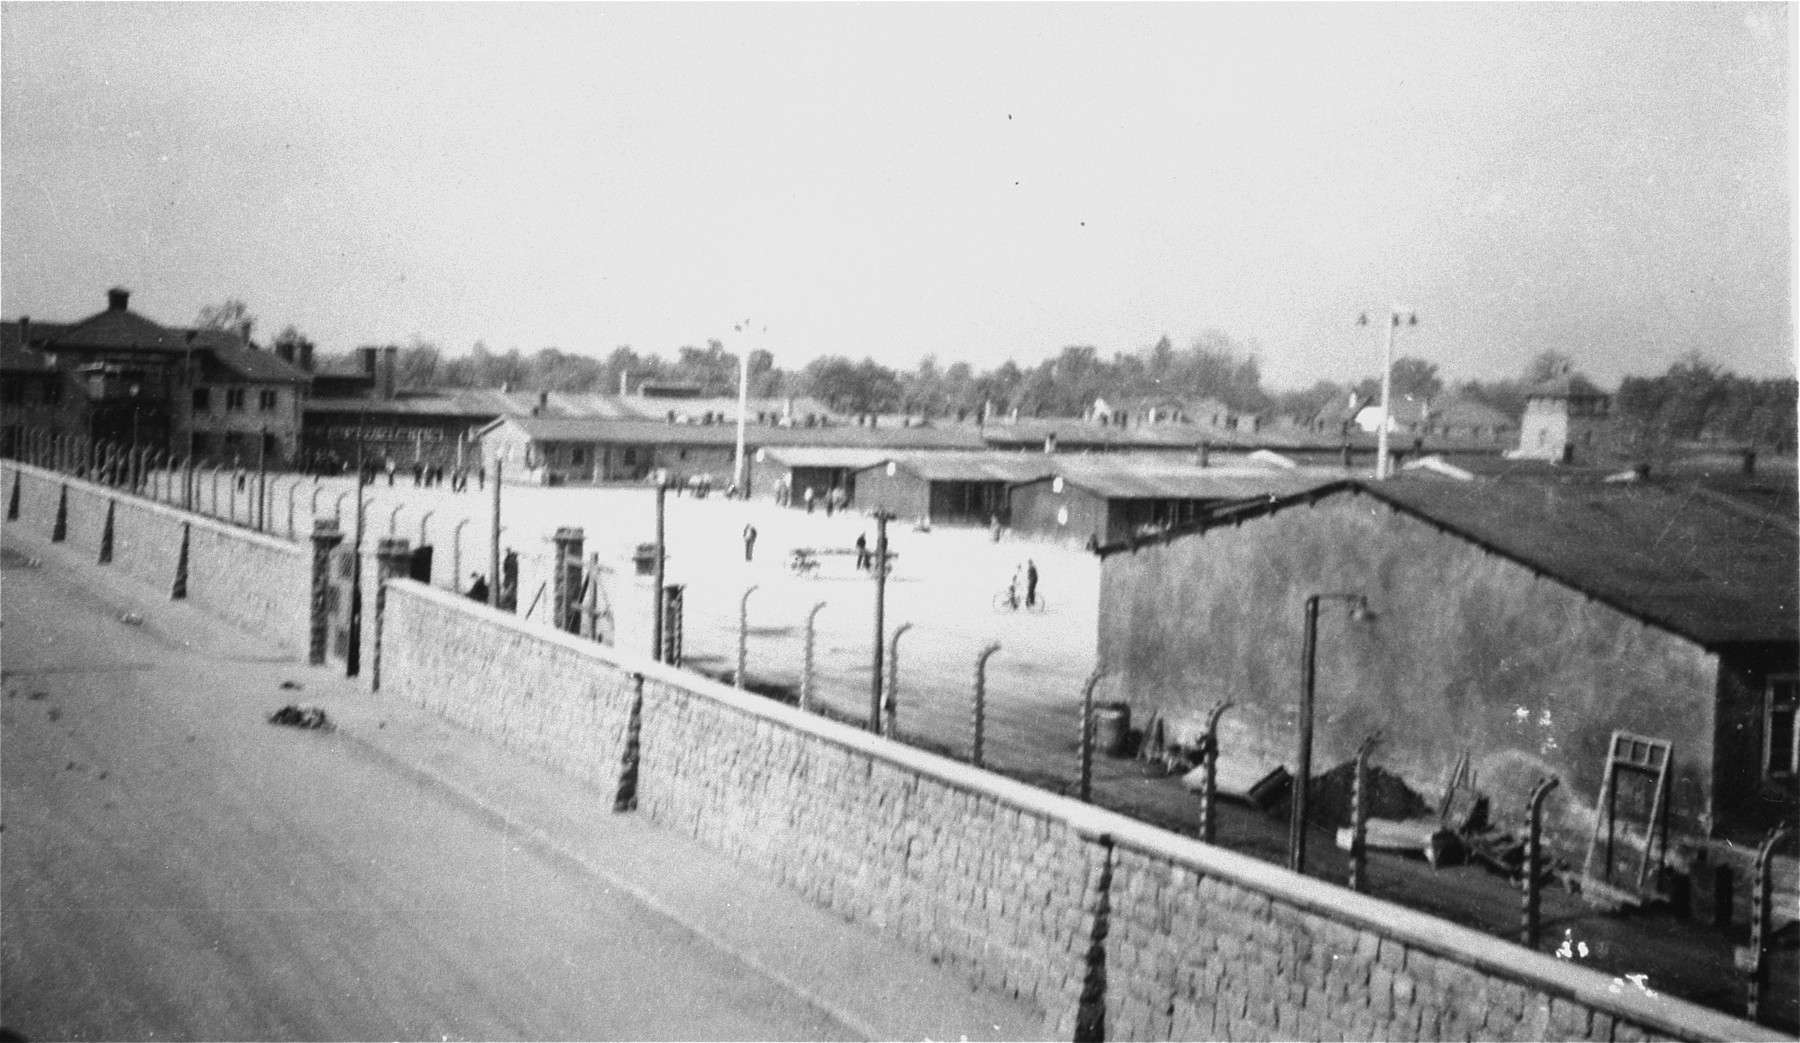 View of the main gate and Appellplatz (inspection square) at the Gusen concentration camp.